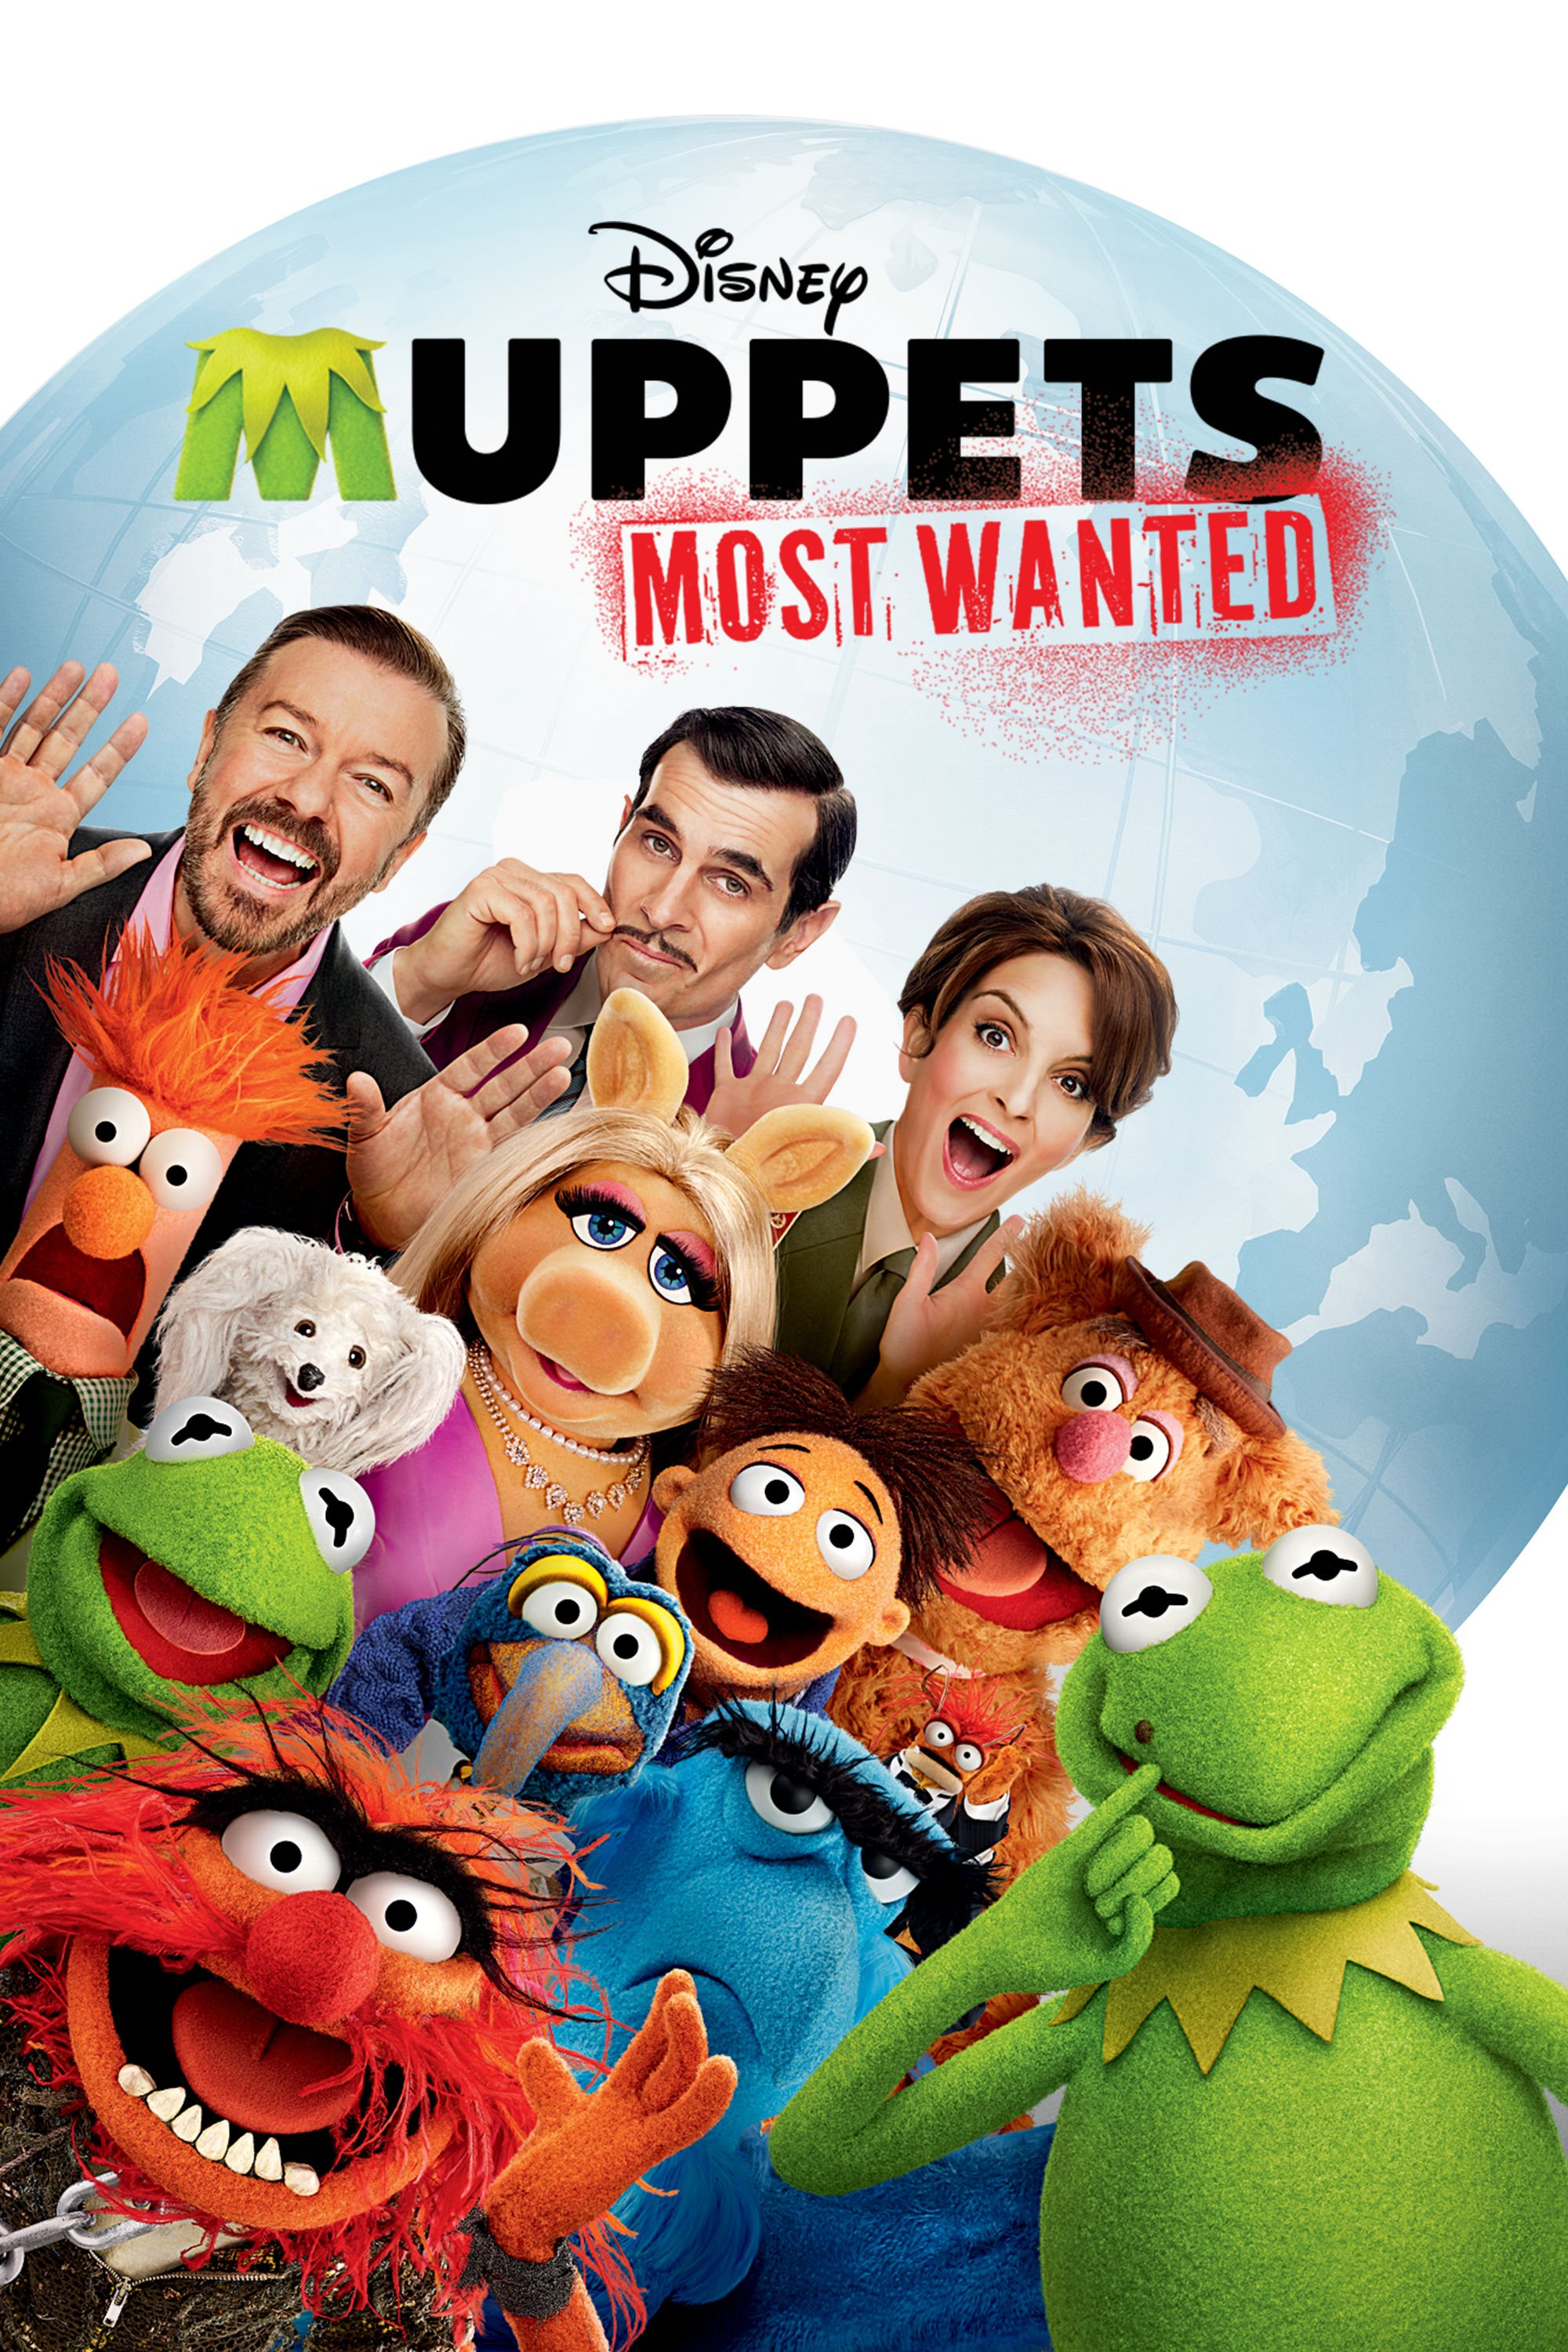 muppets-most-wanted-filming-locations-poster